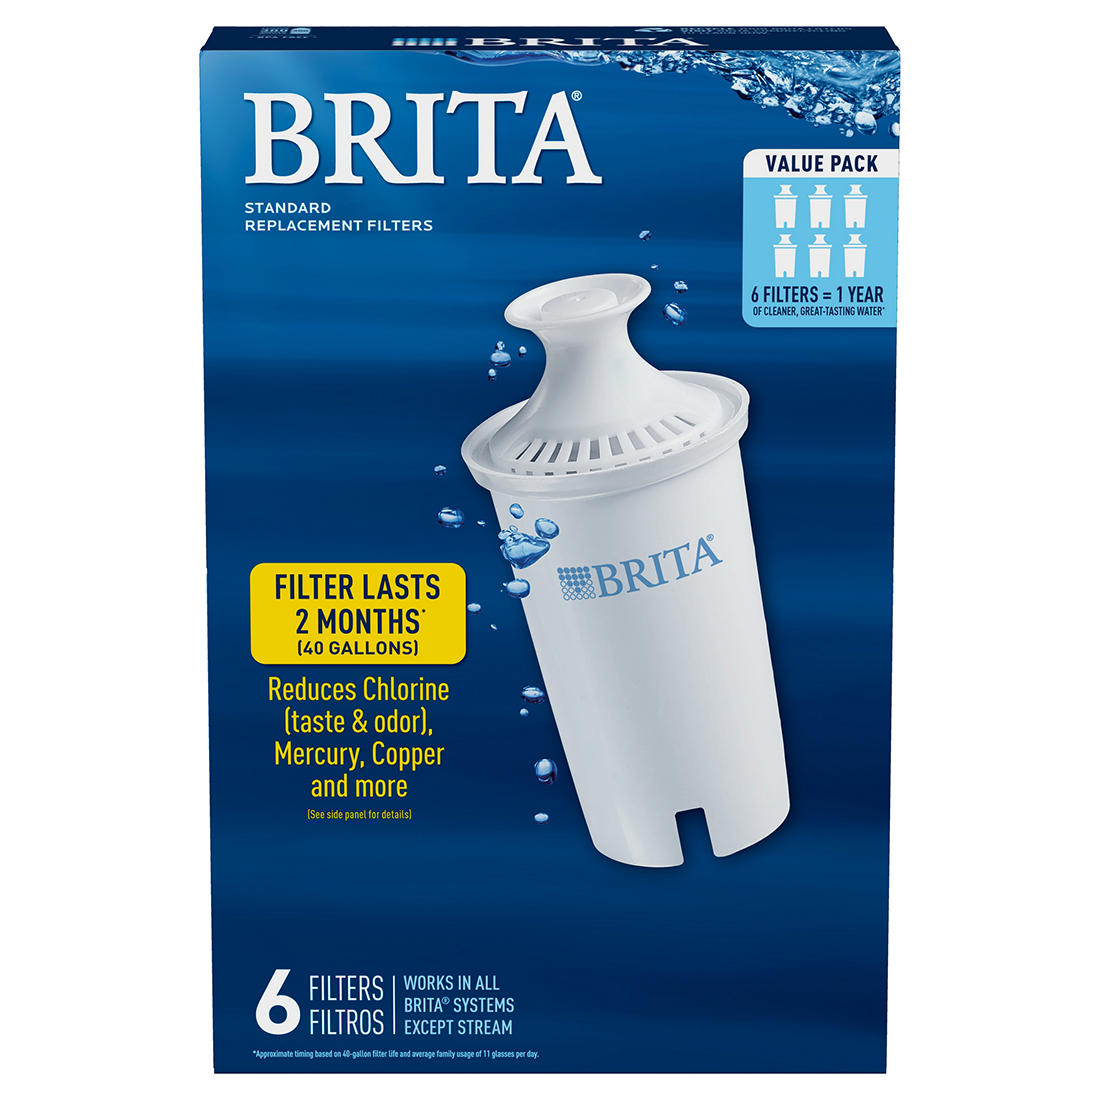 BRITA 3-PACK REPLACEMENT WATER FILTER for PITCHERS Reduces Chlorine Taste /& Odor